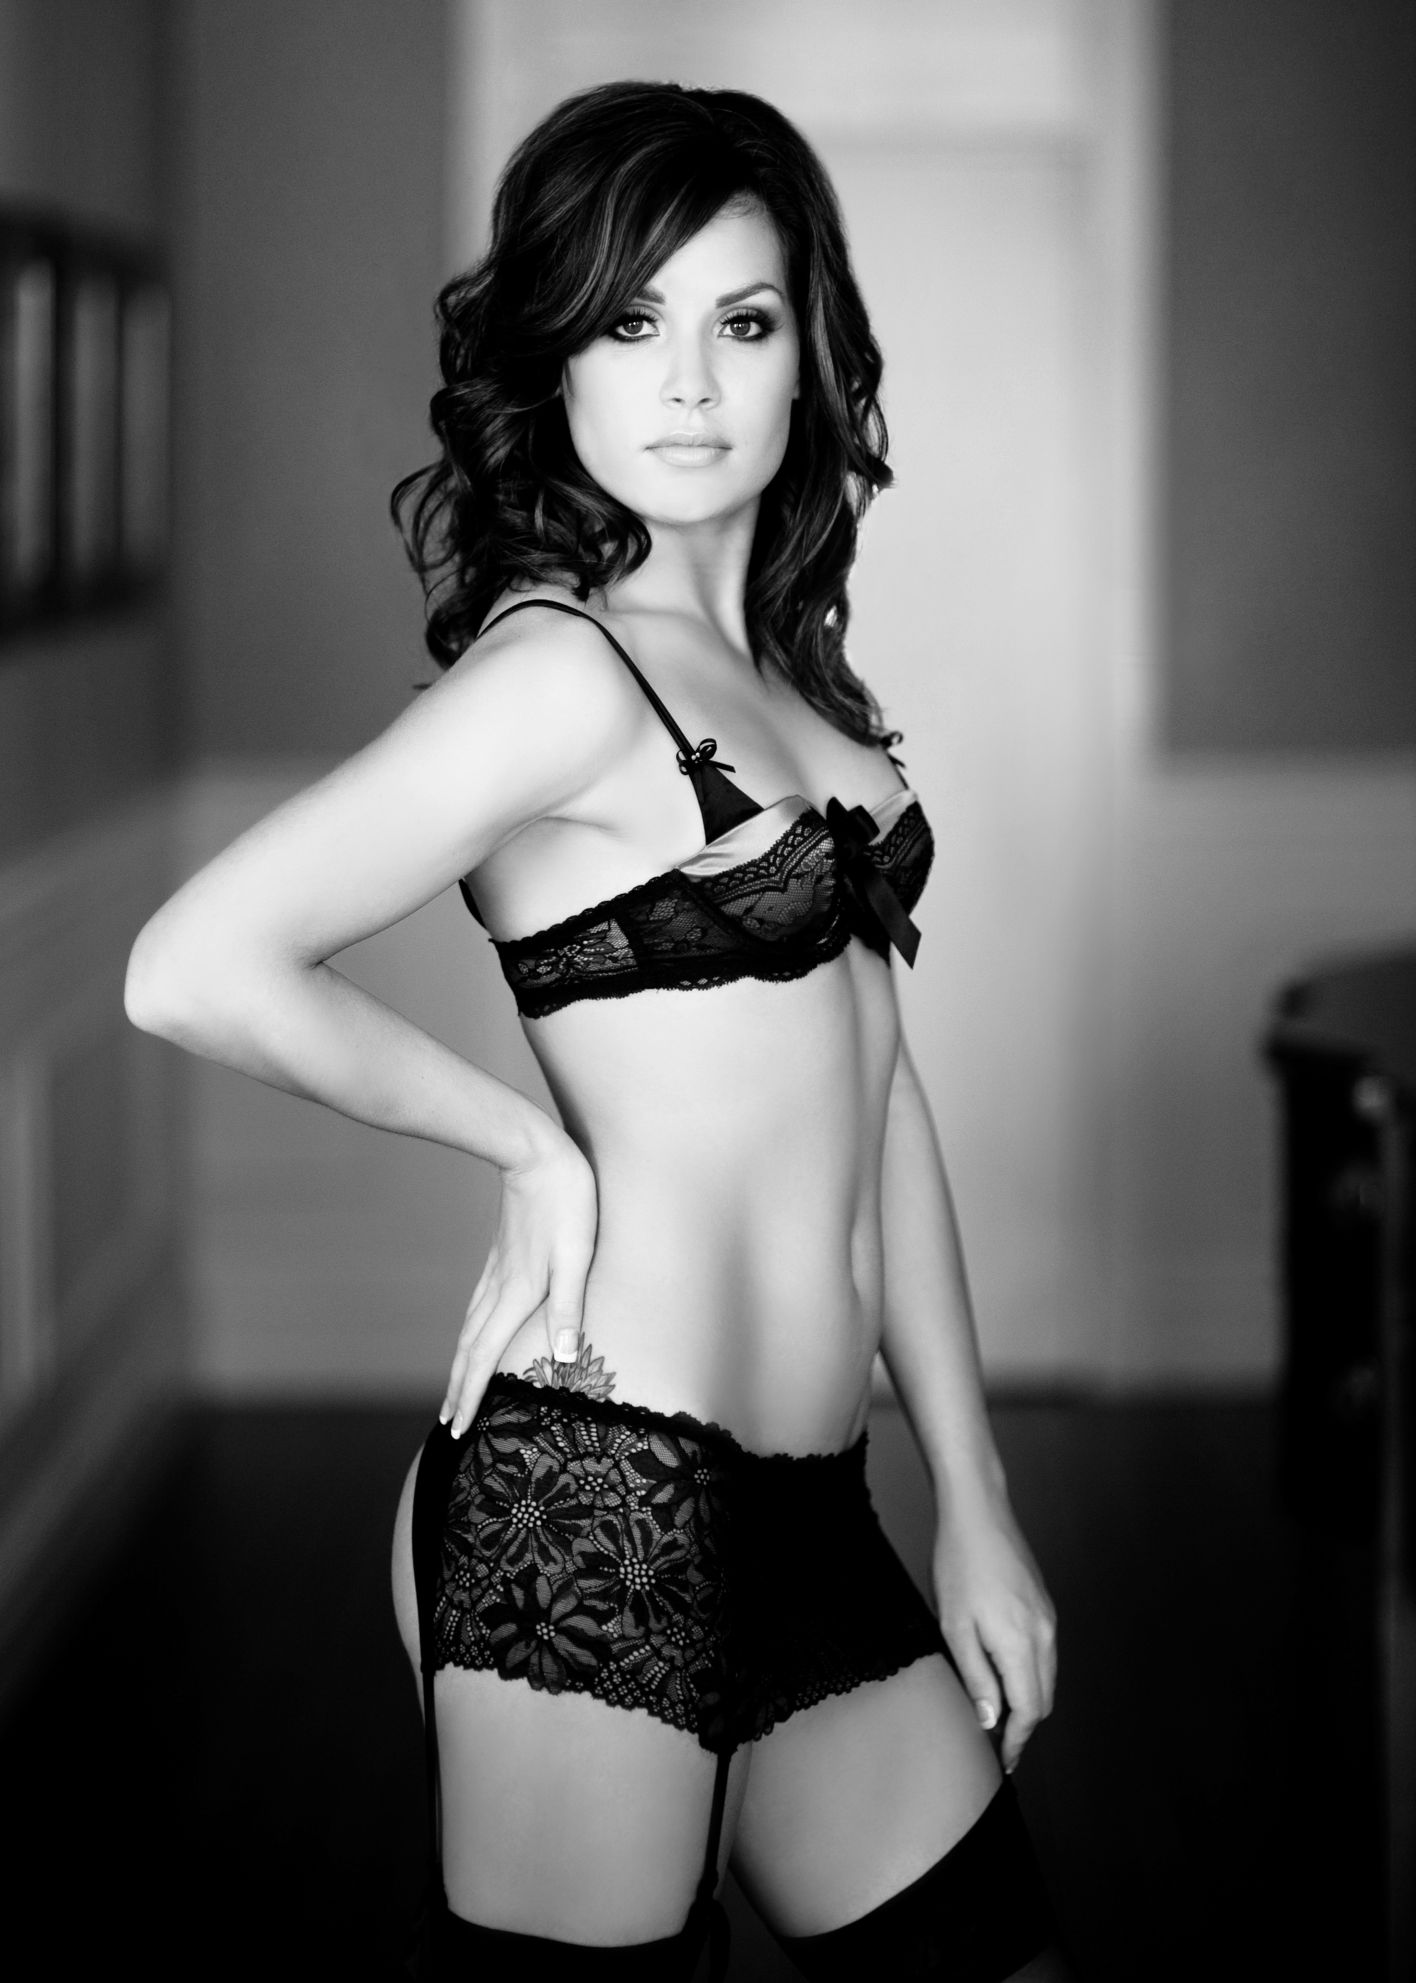 Boudoir Vancouver Black and white photographyVancouver Hotel sexy lingerie agent provocateur